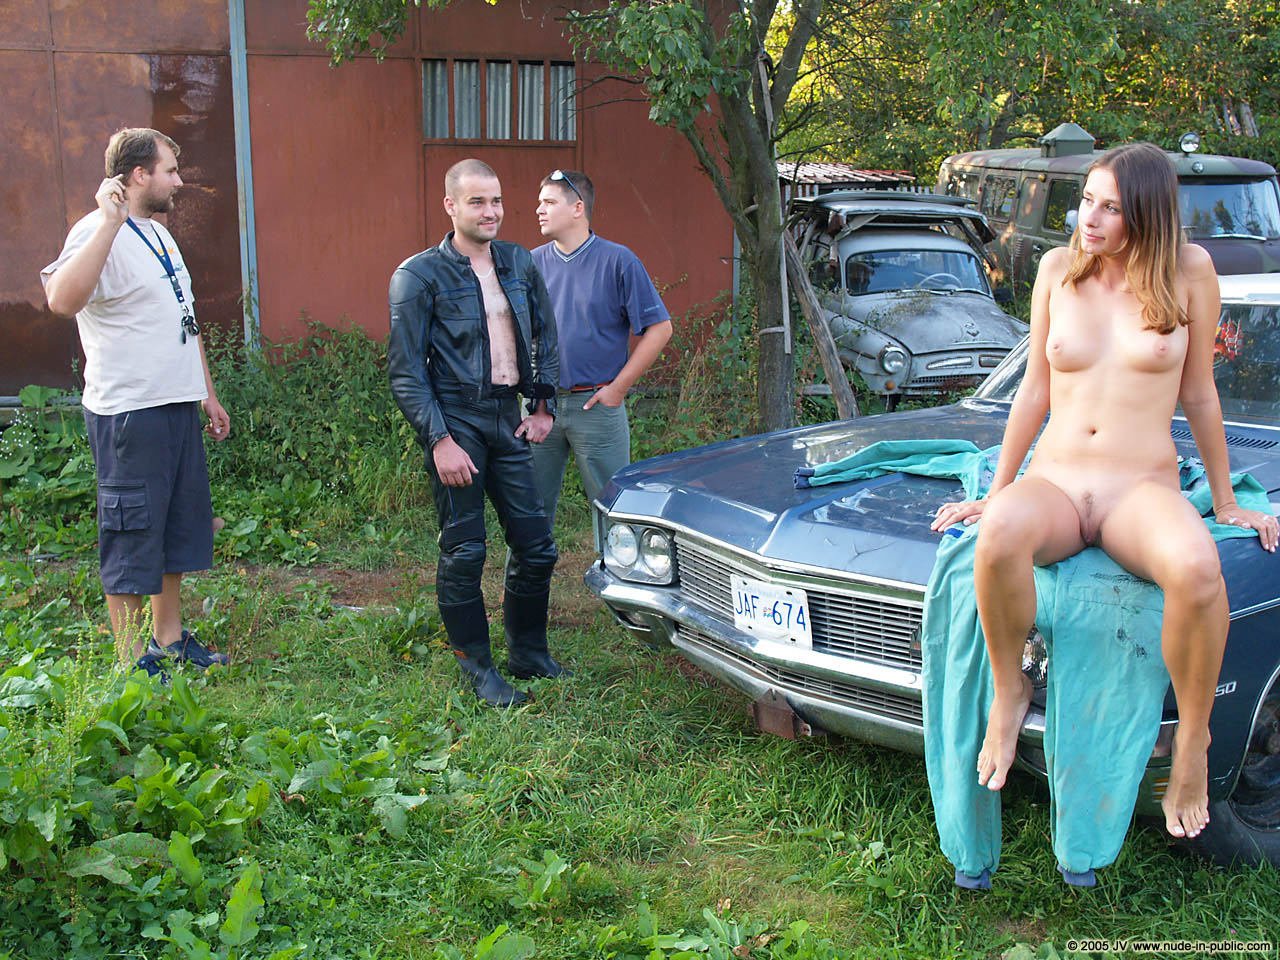 veronika-e-junkyard-cars-mechanic-nude-in-public-37